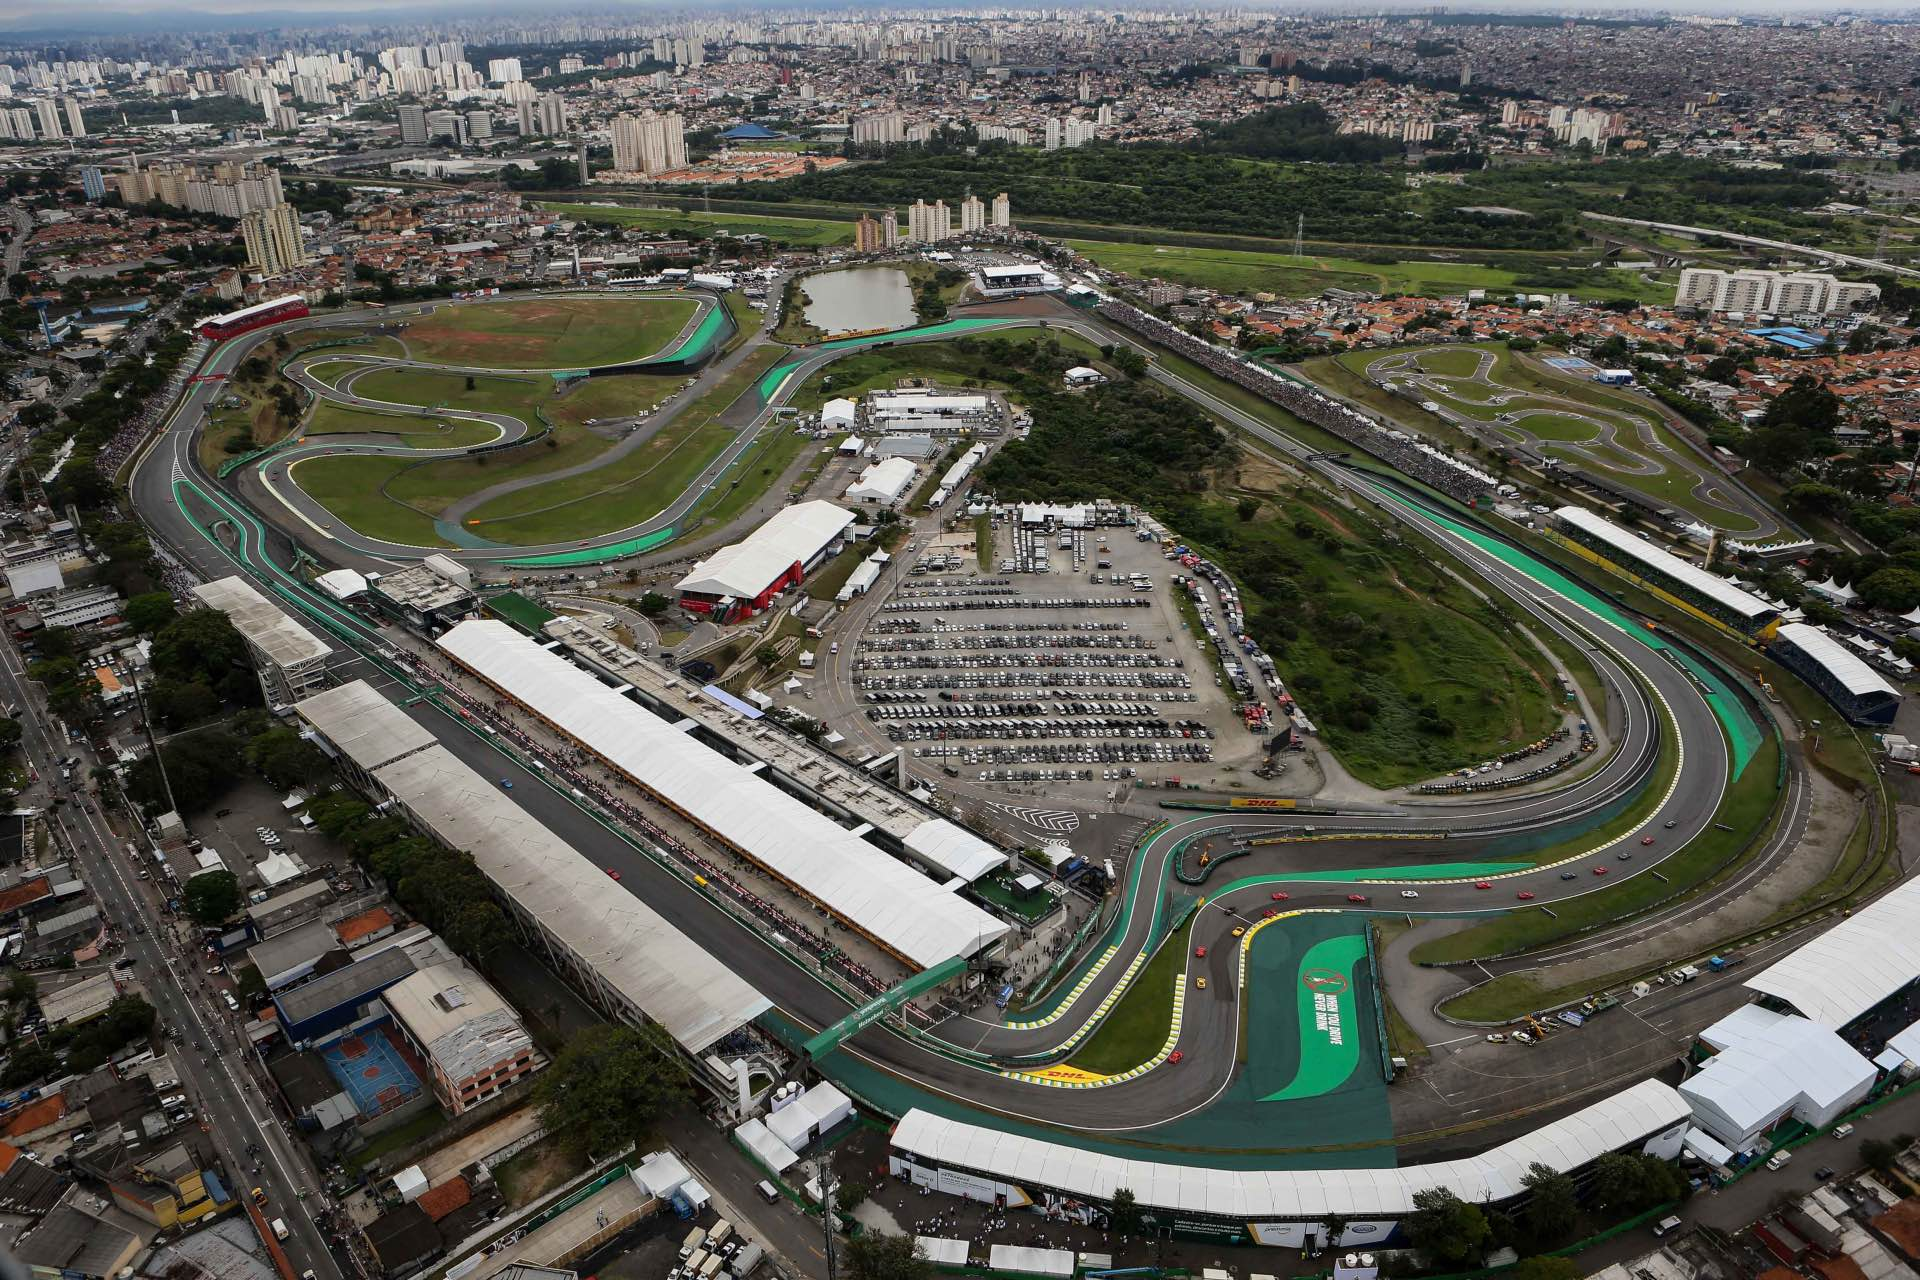 2017 Brazilian Grand Prix, Saturday – Wolfgang Wilhelm